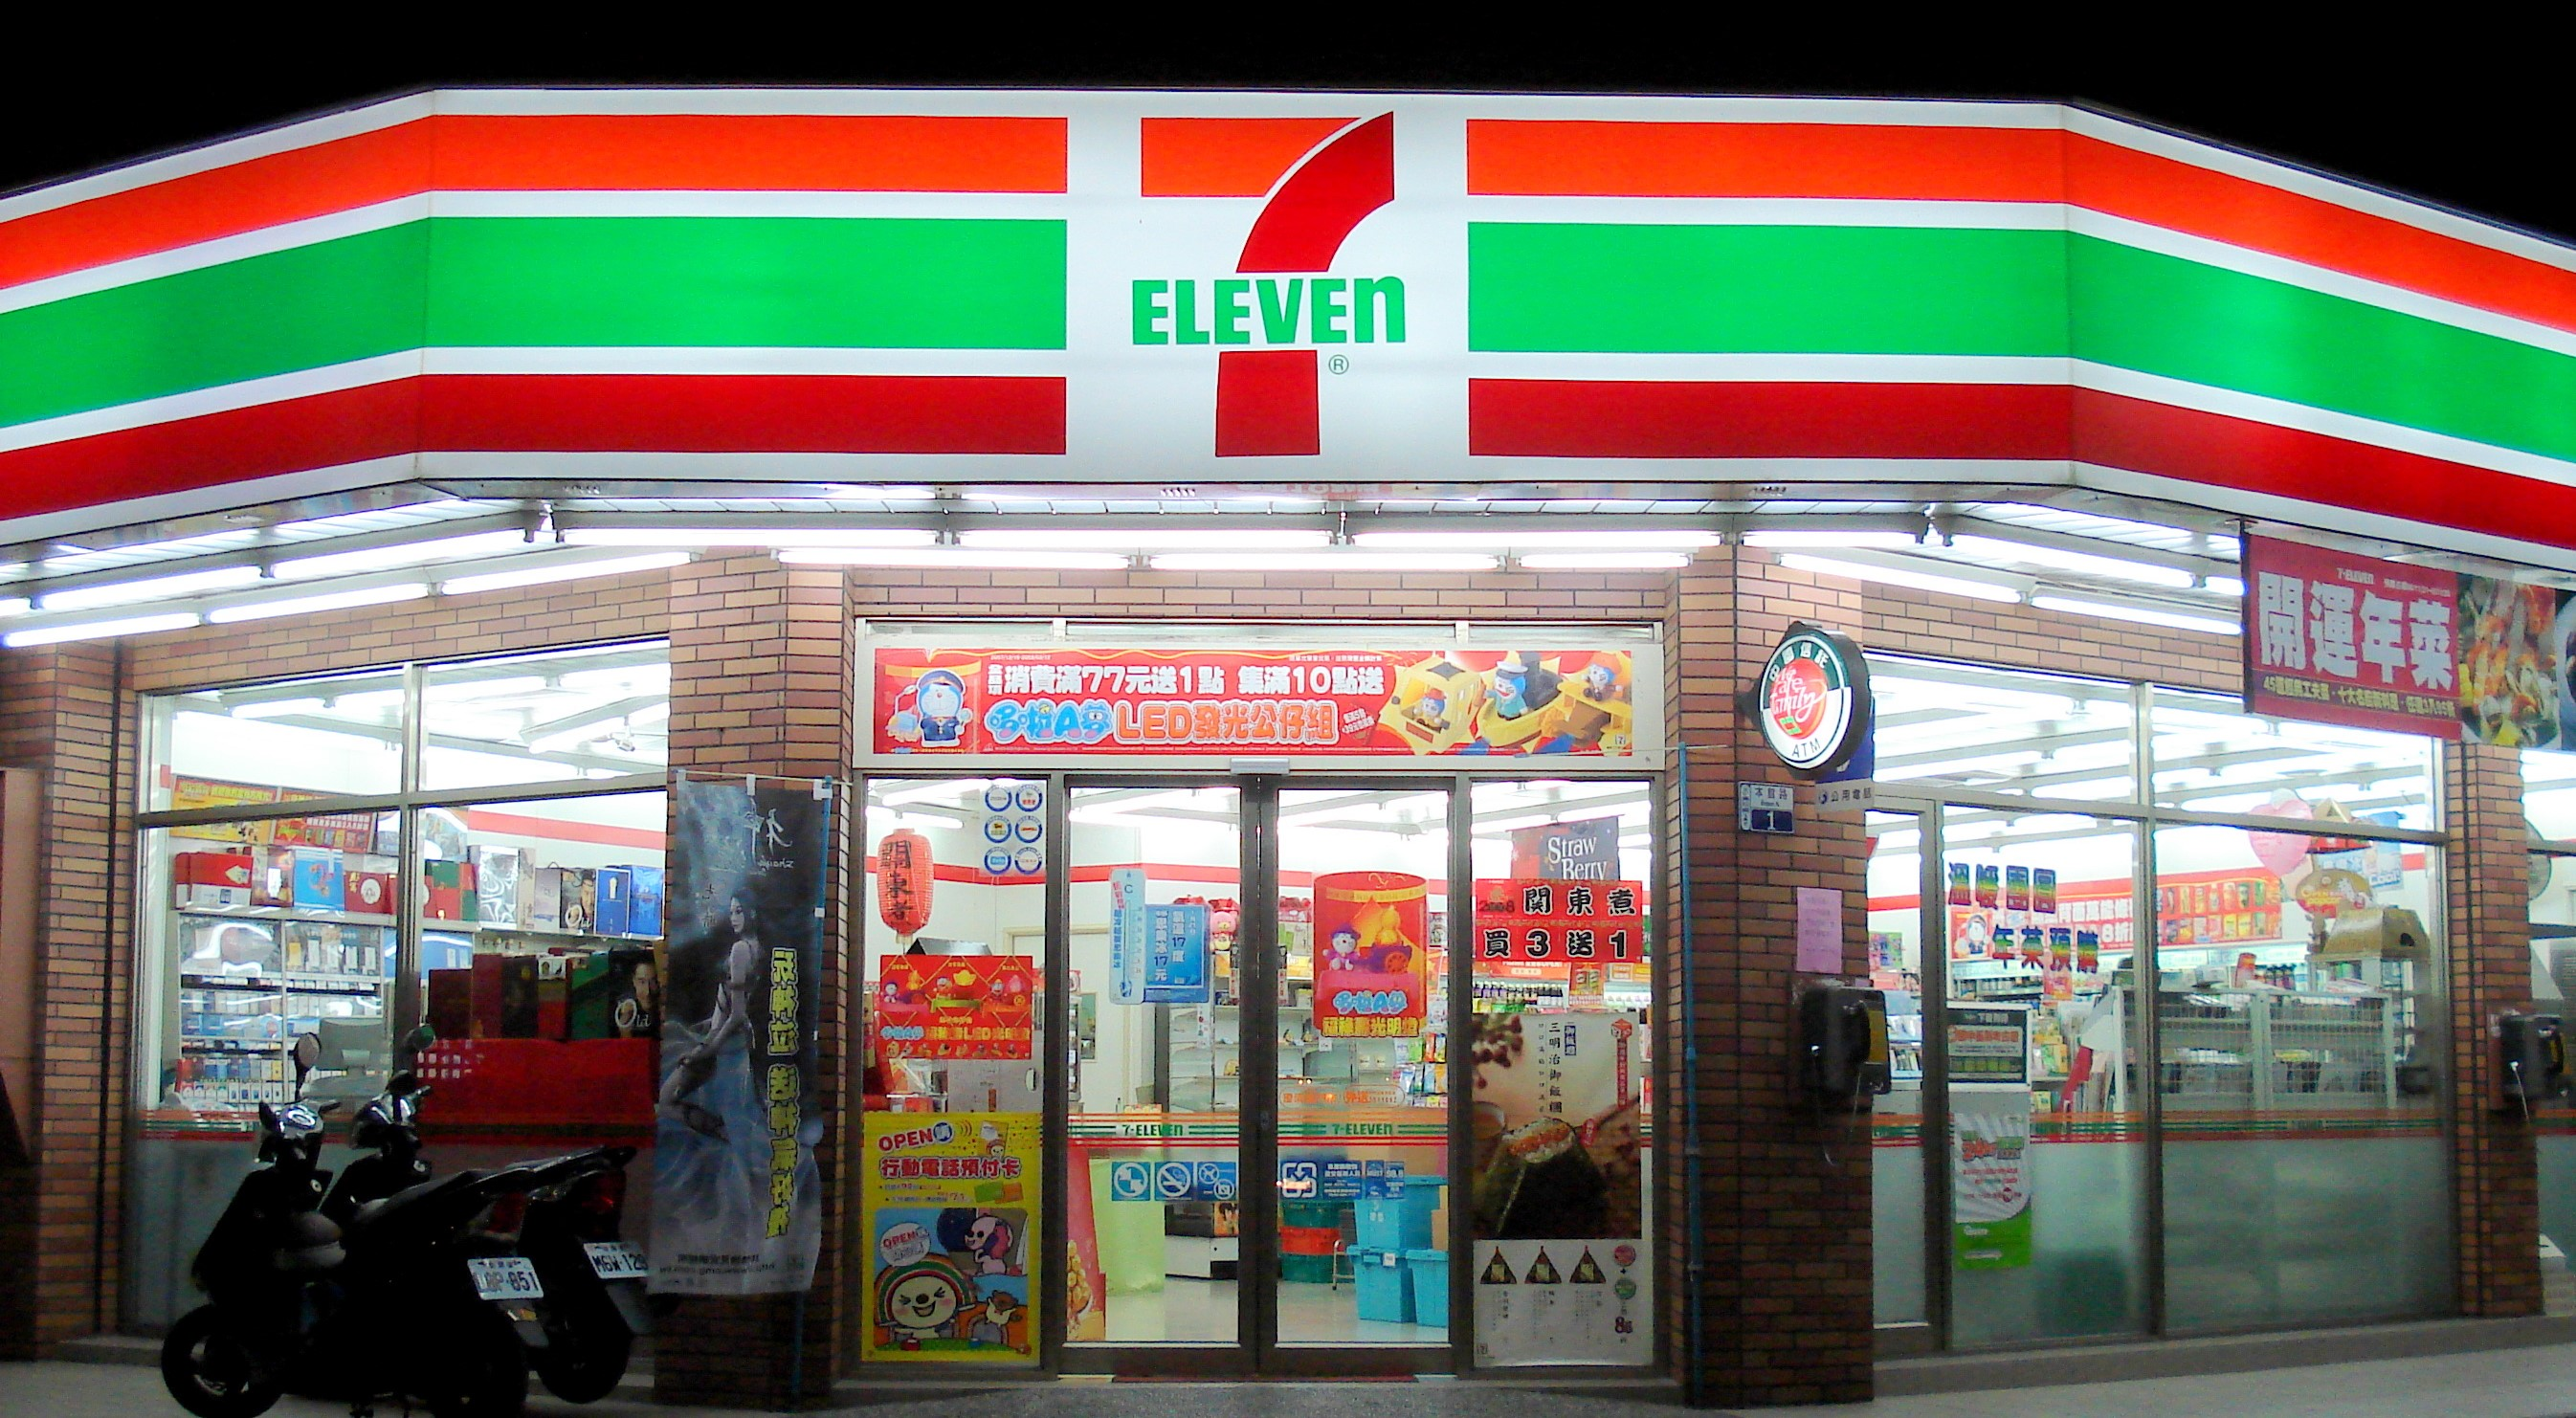 Top 10 Facts From 7-Eleven That Will Tempt You To Their Stores